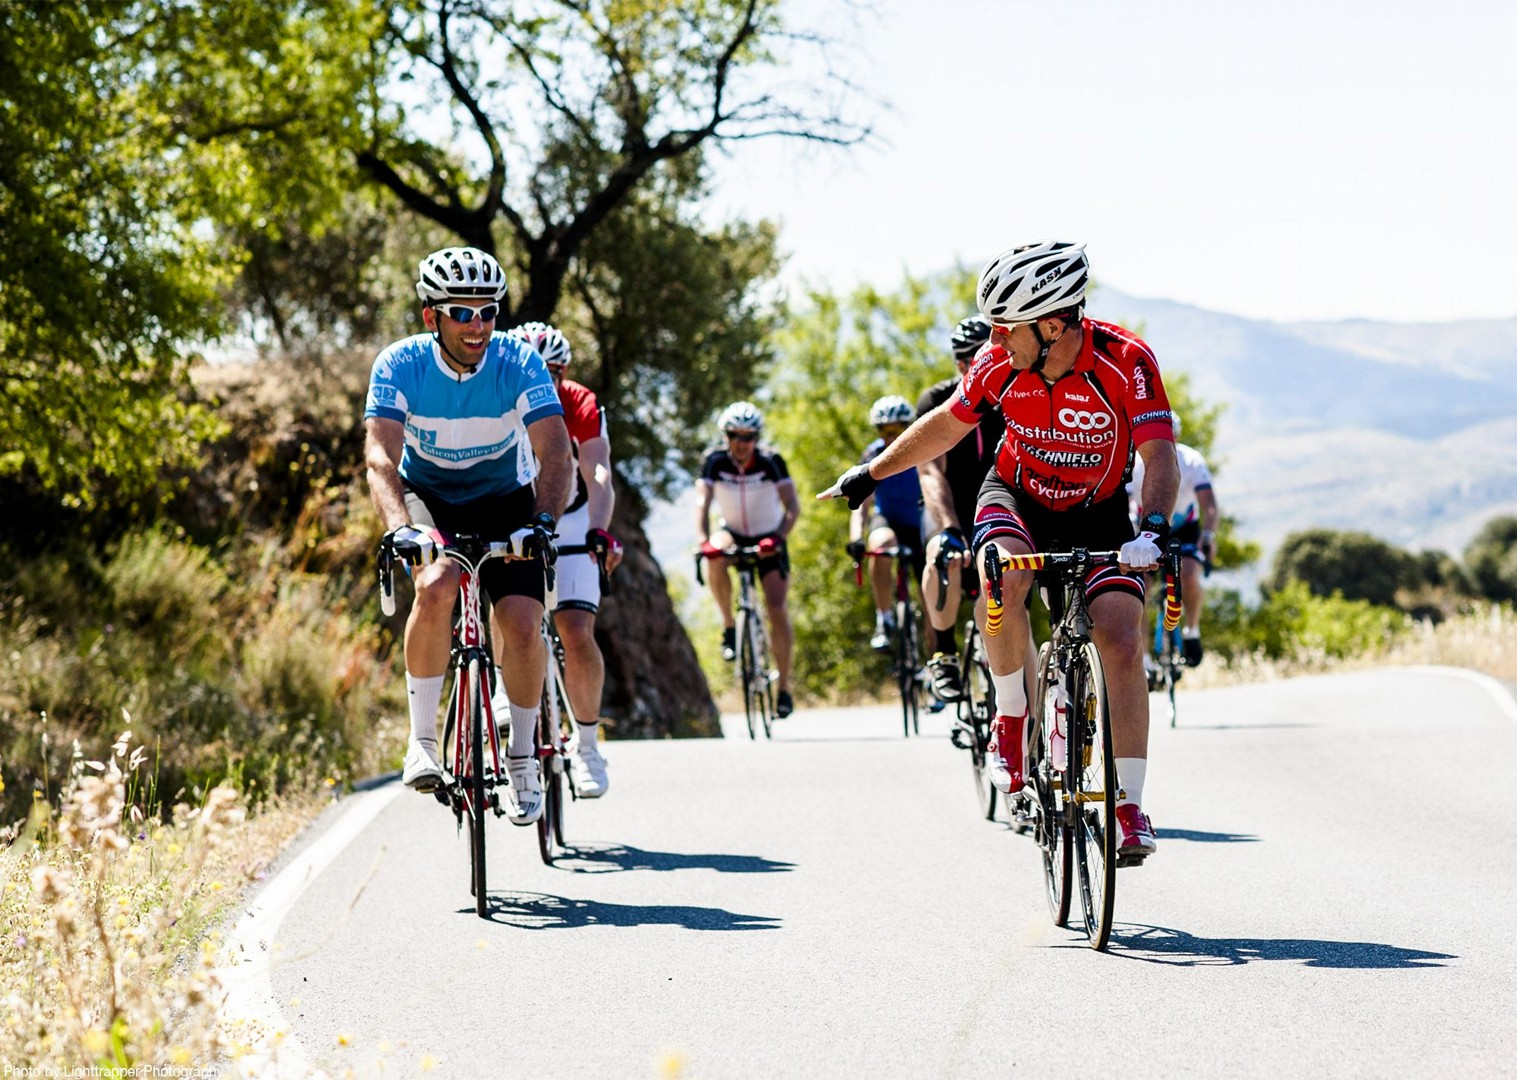 group-road-cycling-friends-spain-saddle-skedaddle.jpg - Southern Spain - Andalucia - Los Pueblos Blancos - Road Cycling